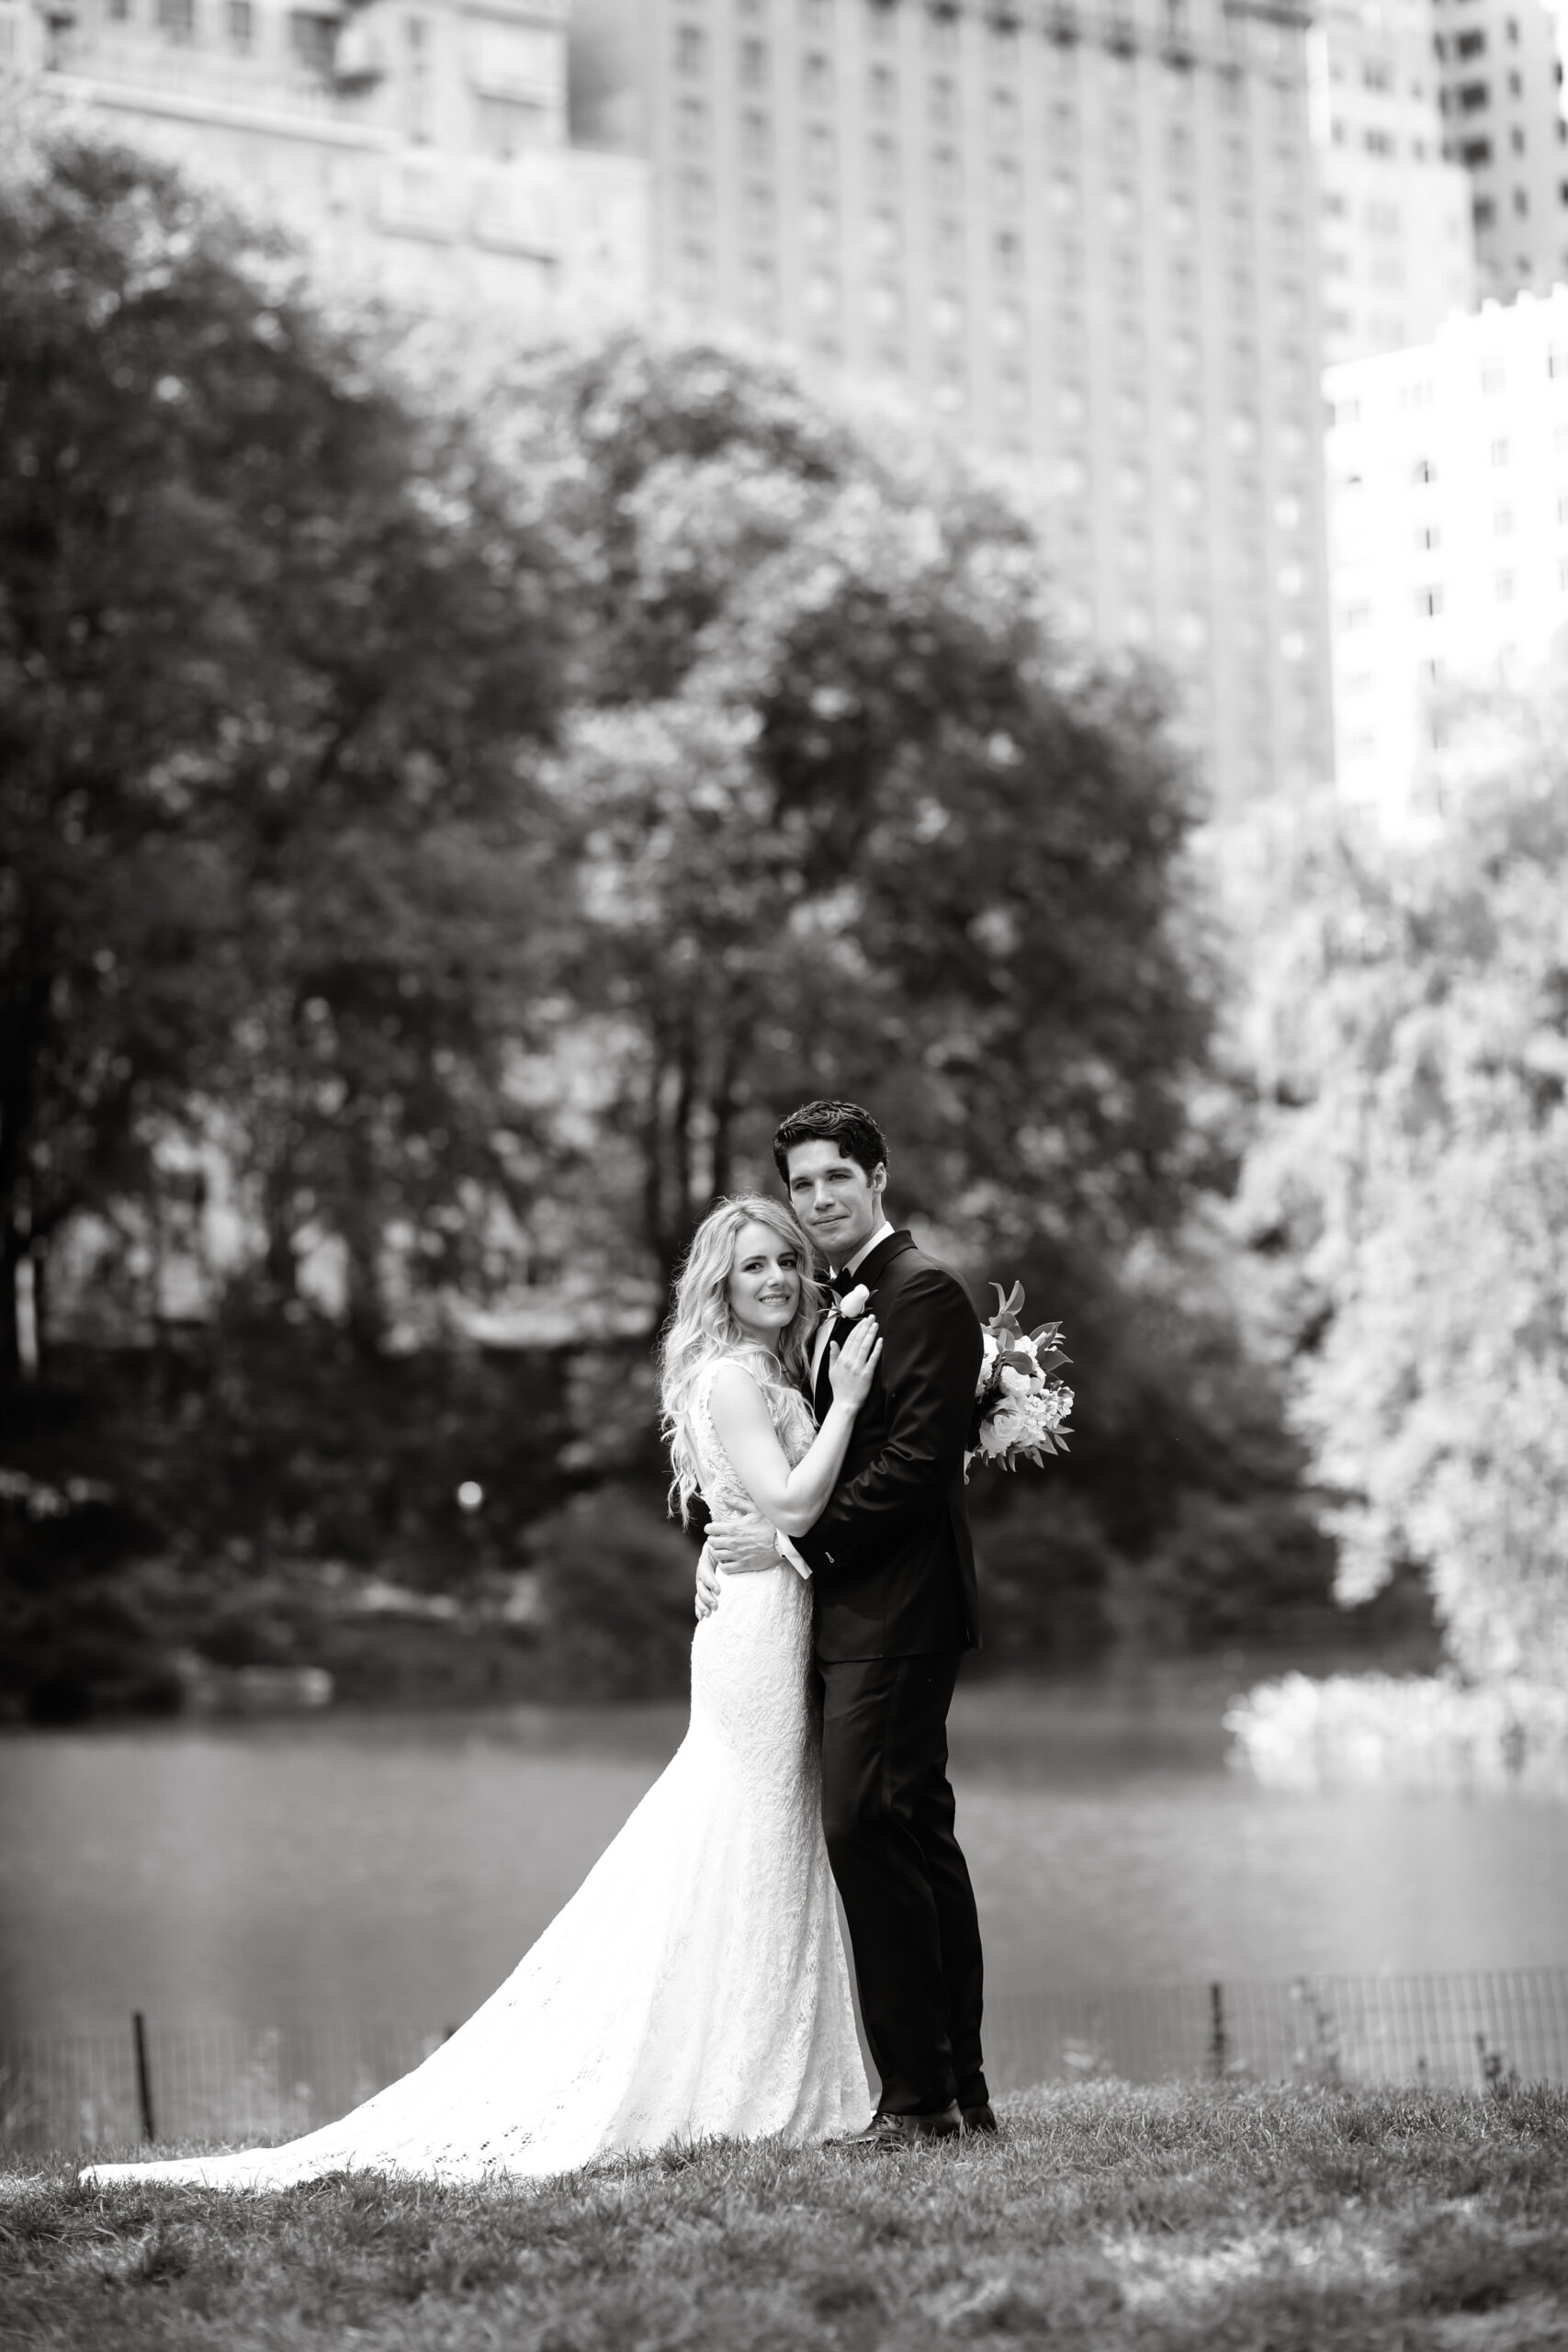 bride and groom photo in black and white